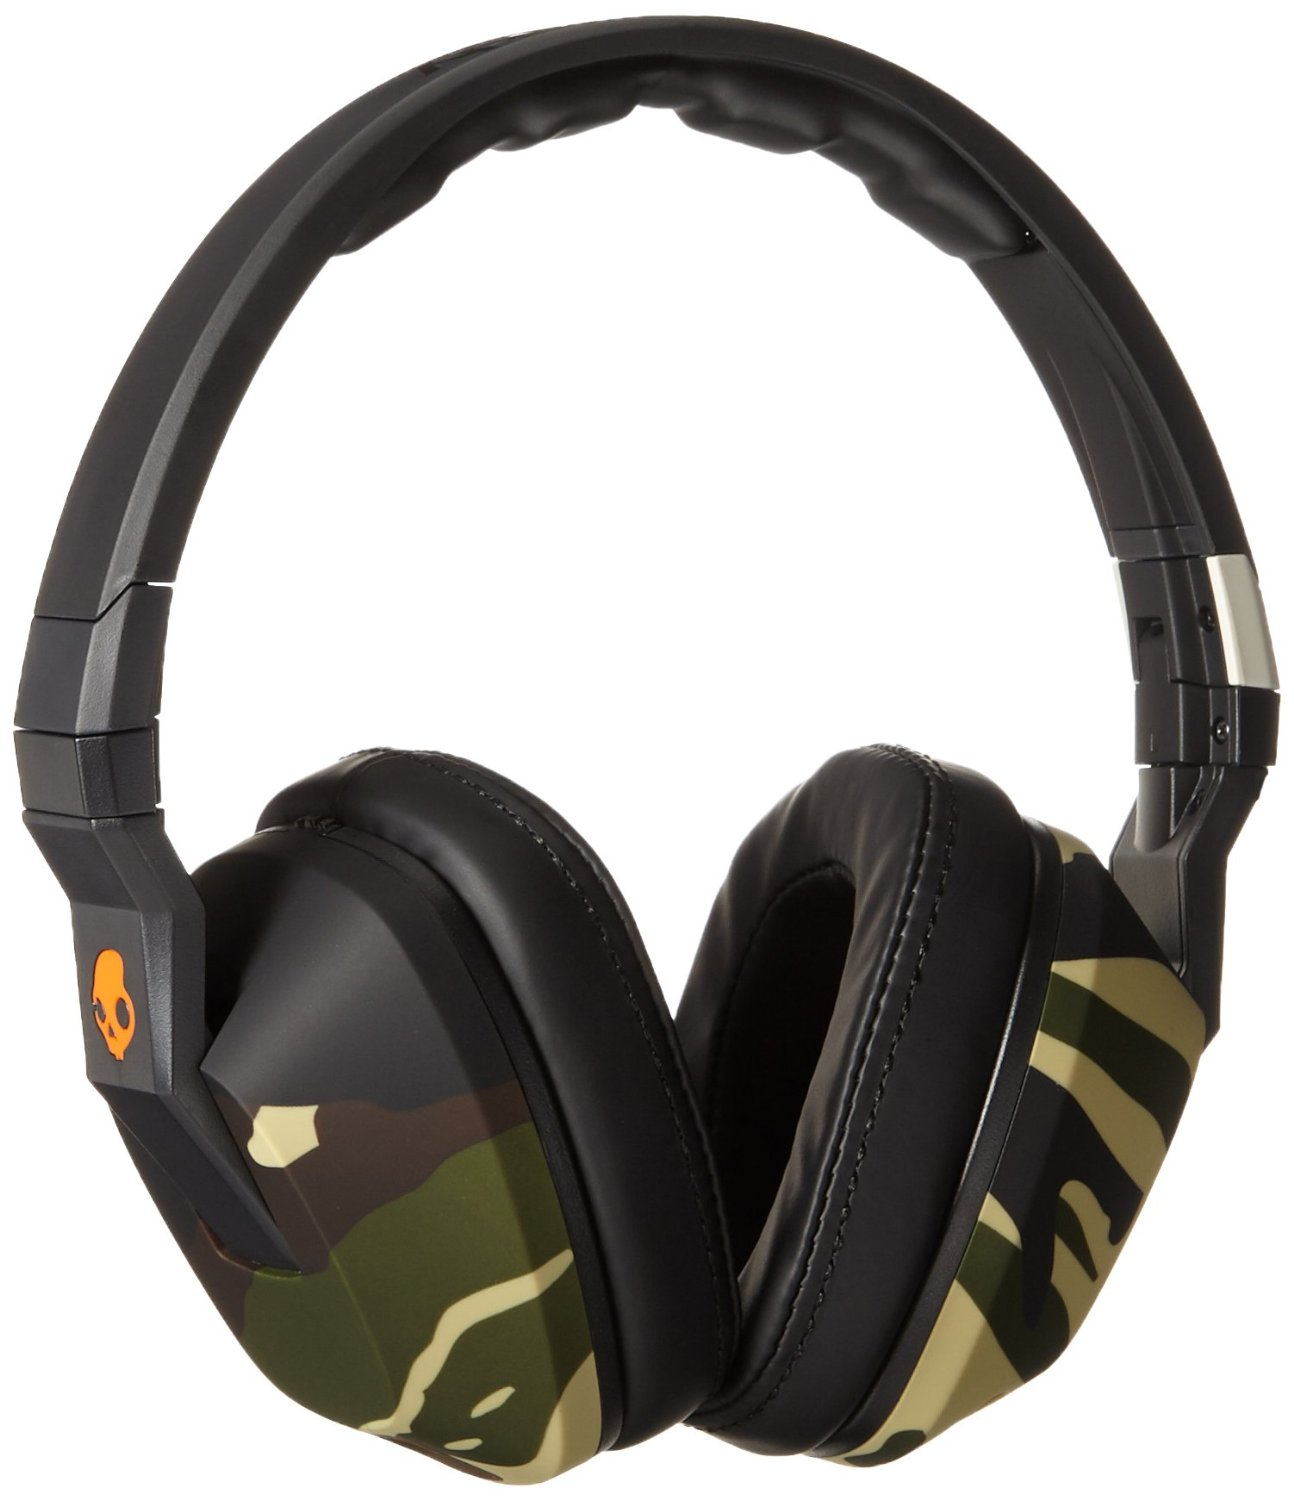 Shop for skullcandy headphones online at Target. Free shipping & returns and save 5% every day with your Target REDcard.